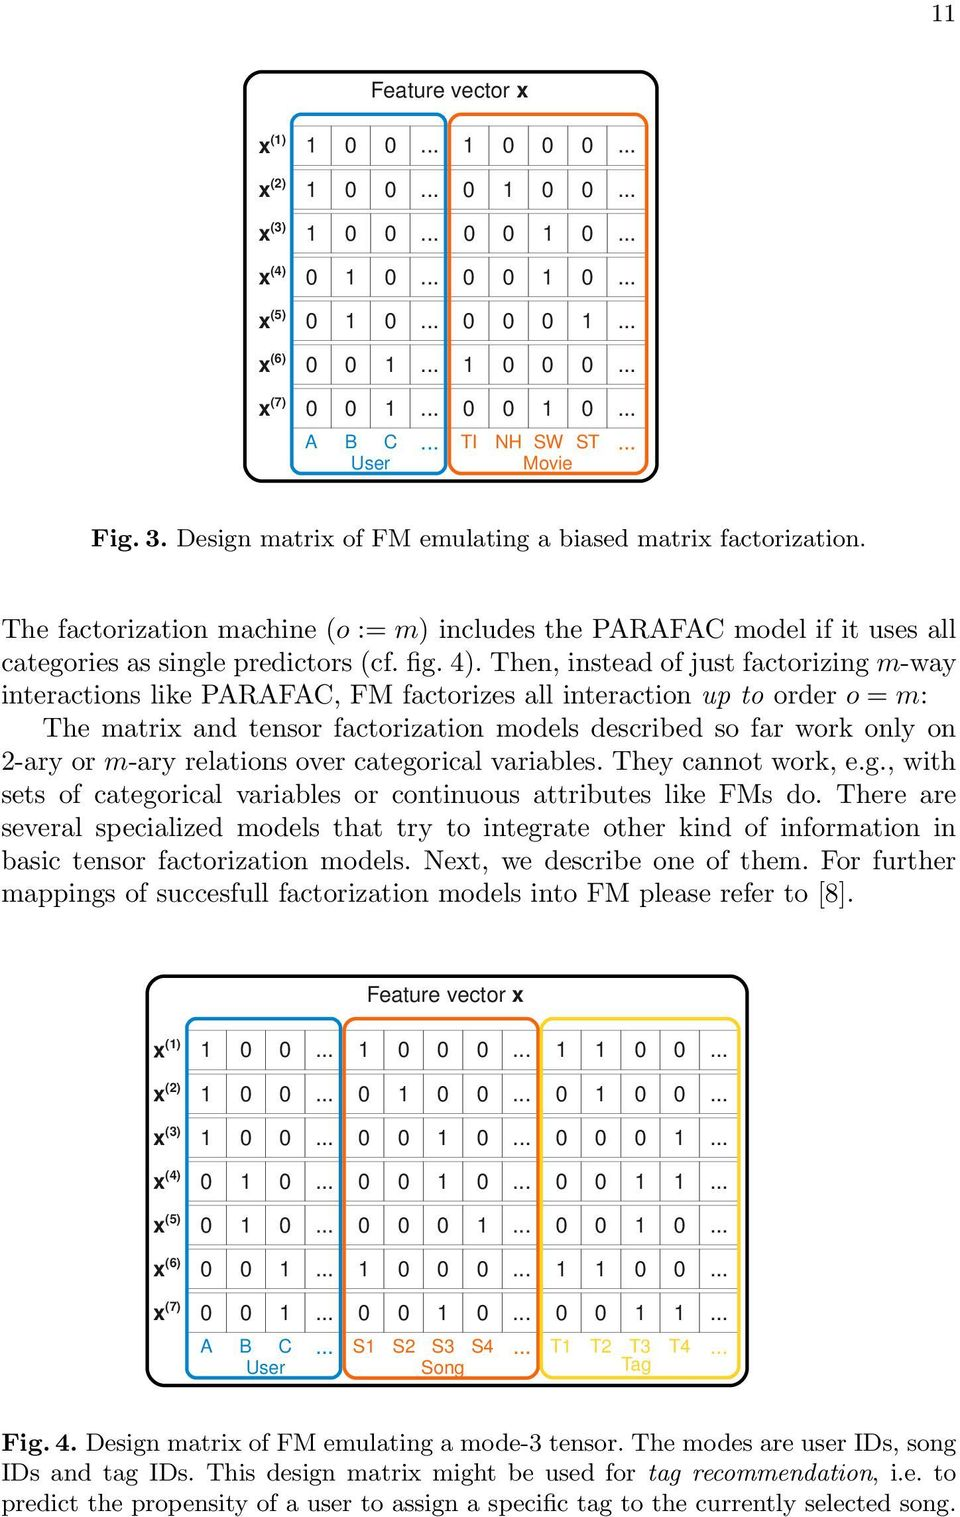 Then, instead of just factorizing m-way interactions like PARAFAC, FM factorizes all interaction up to order o = m: The matrix and tensor factorization models described so far work only on 2-ary or